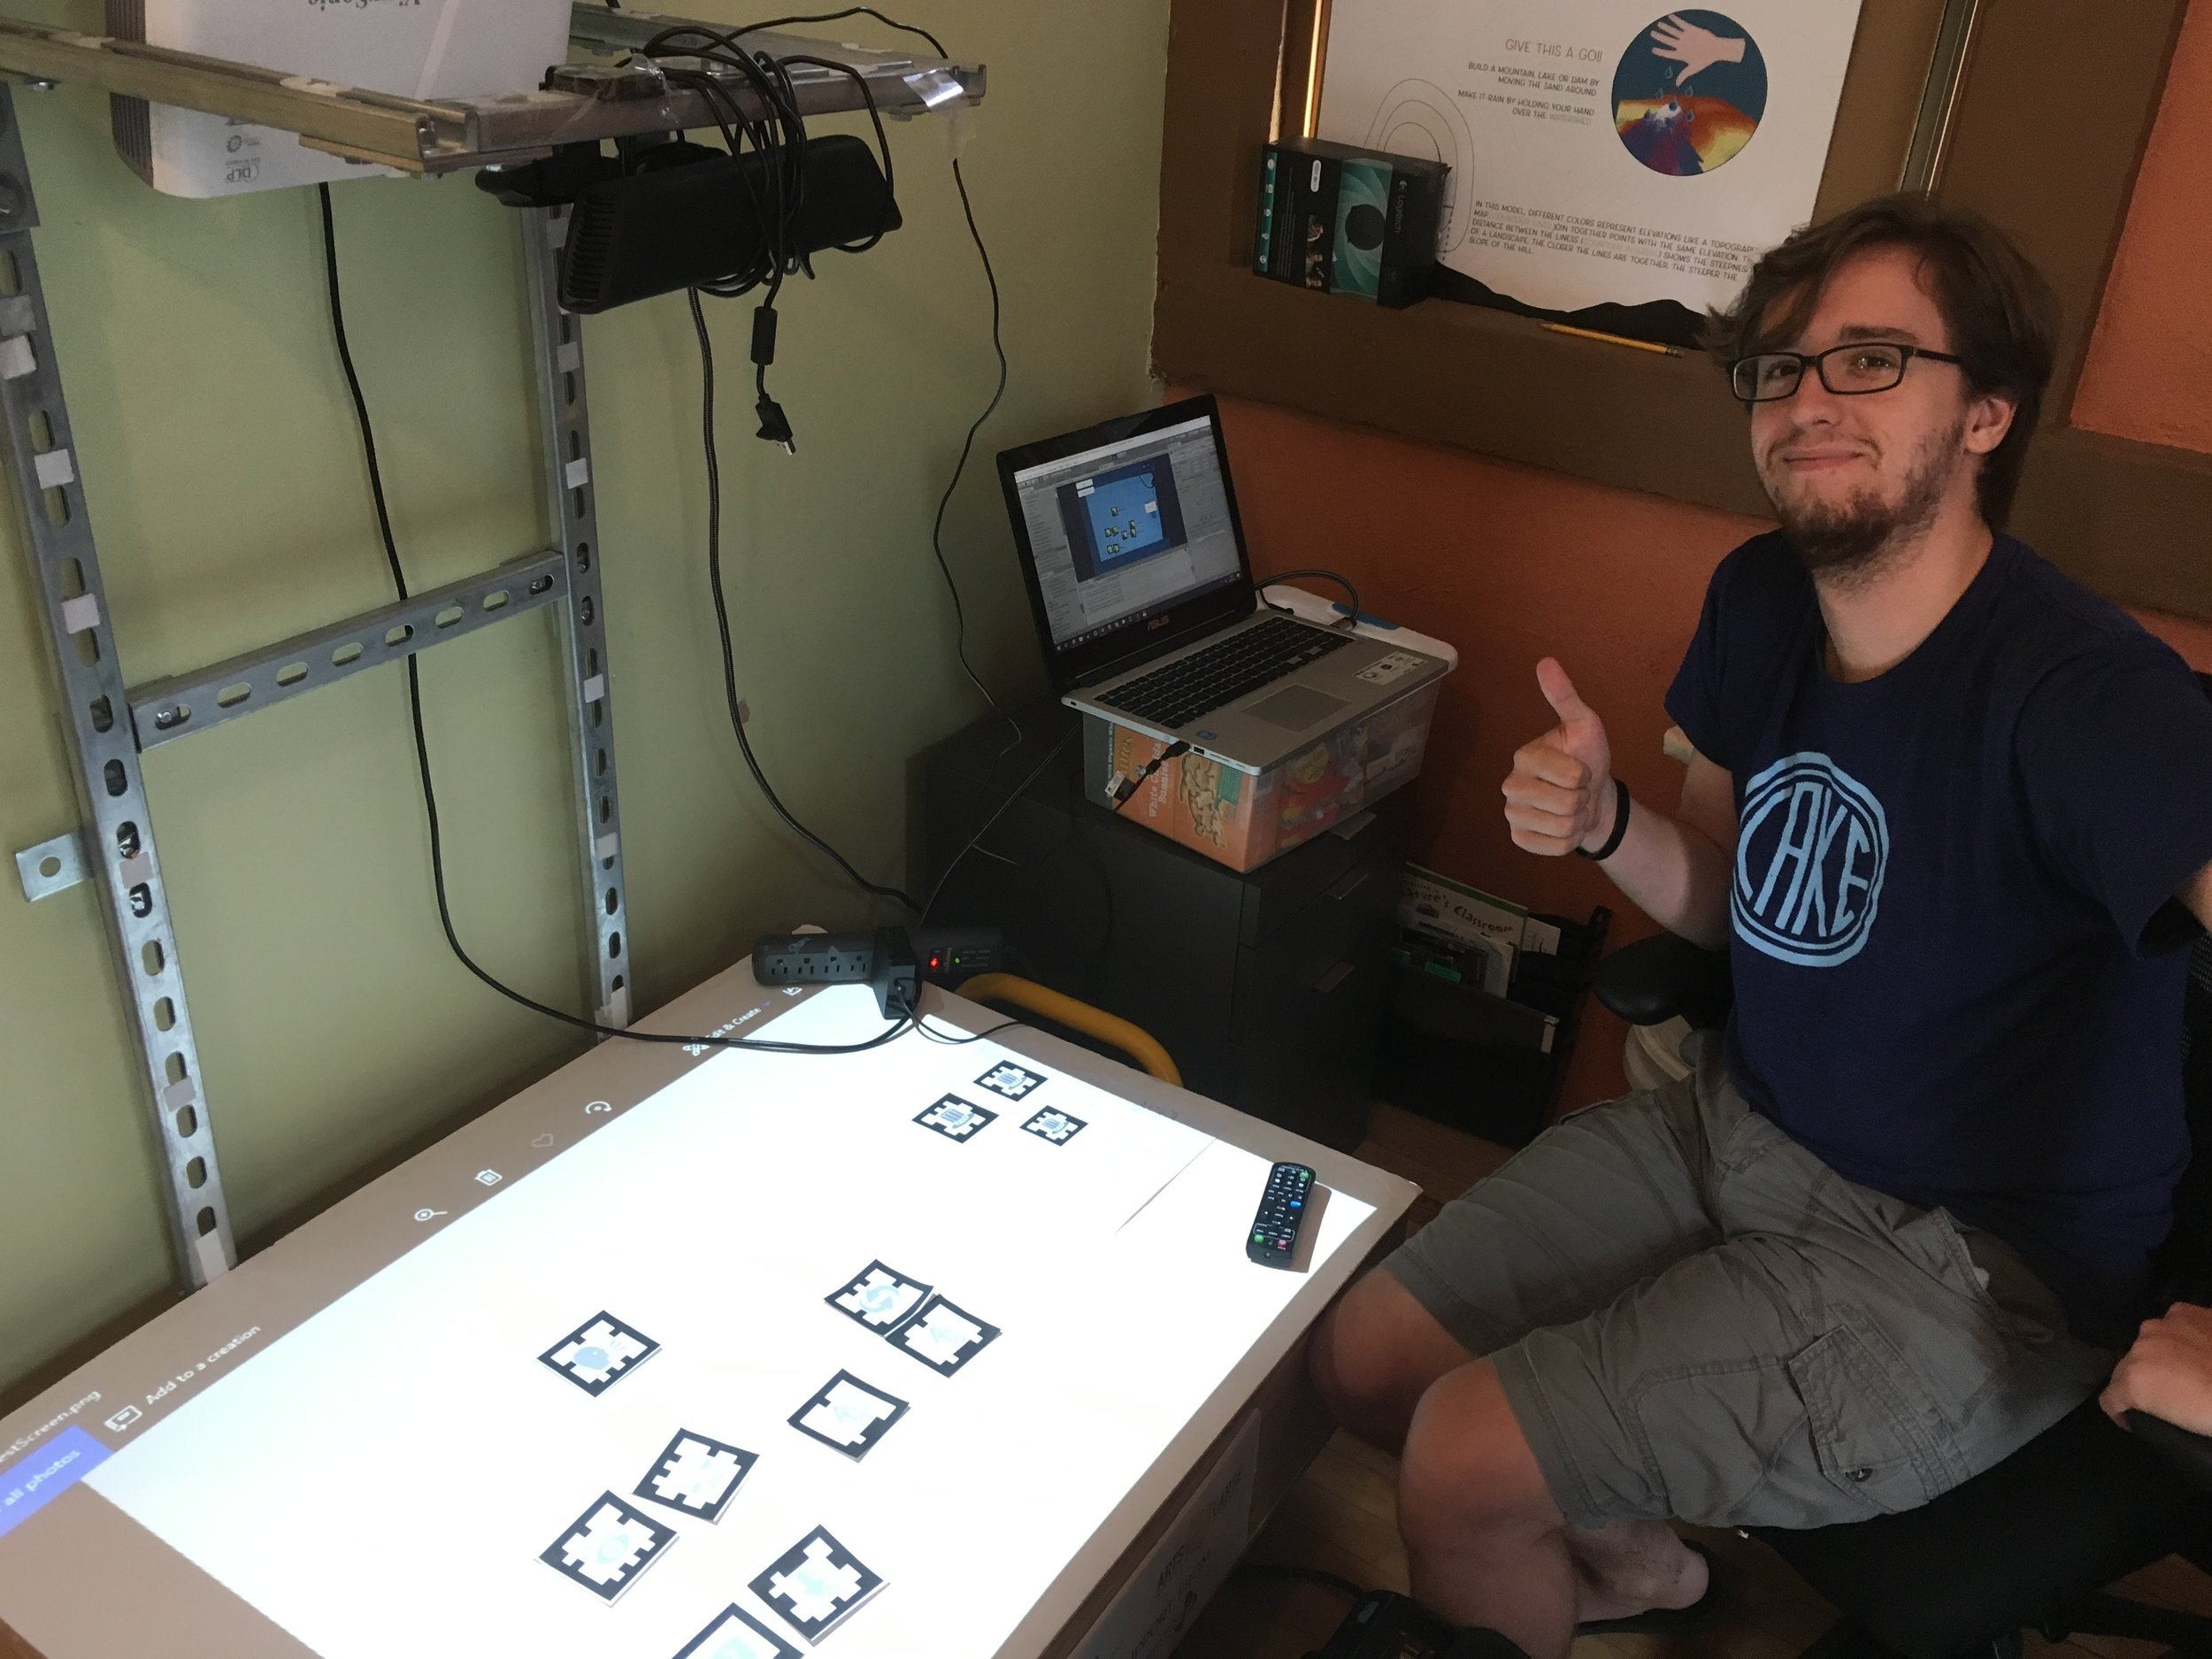 Solving a vexing challenge to connect the Augmented Reality systems with our game design. Thanks, Mike!